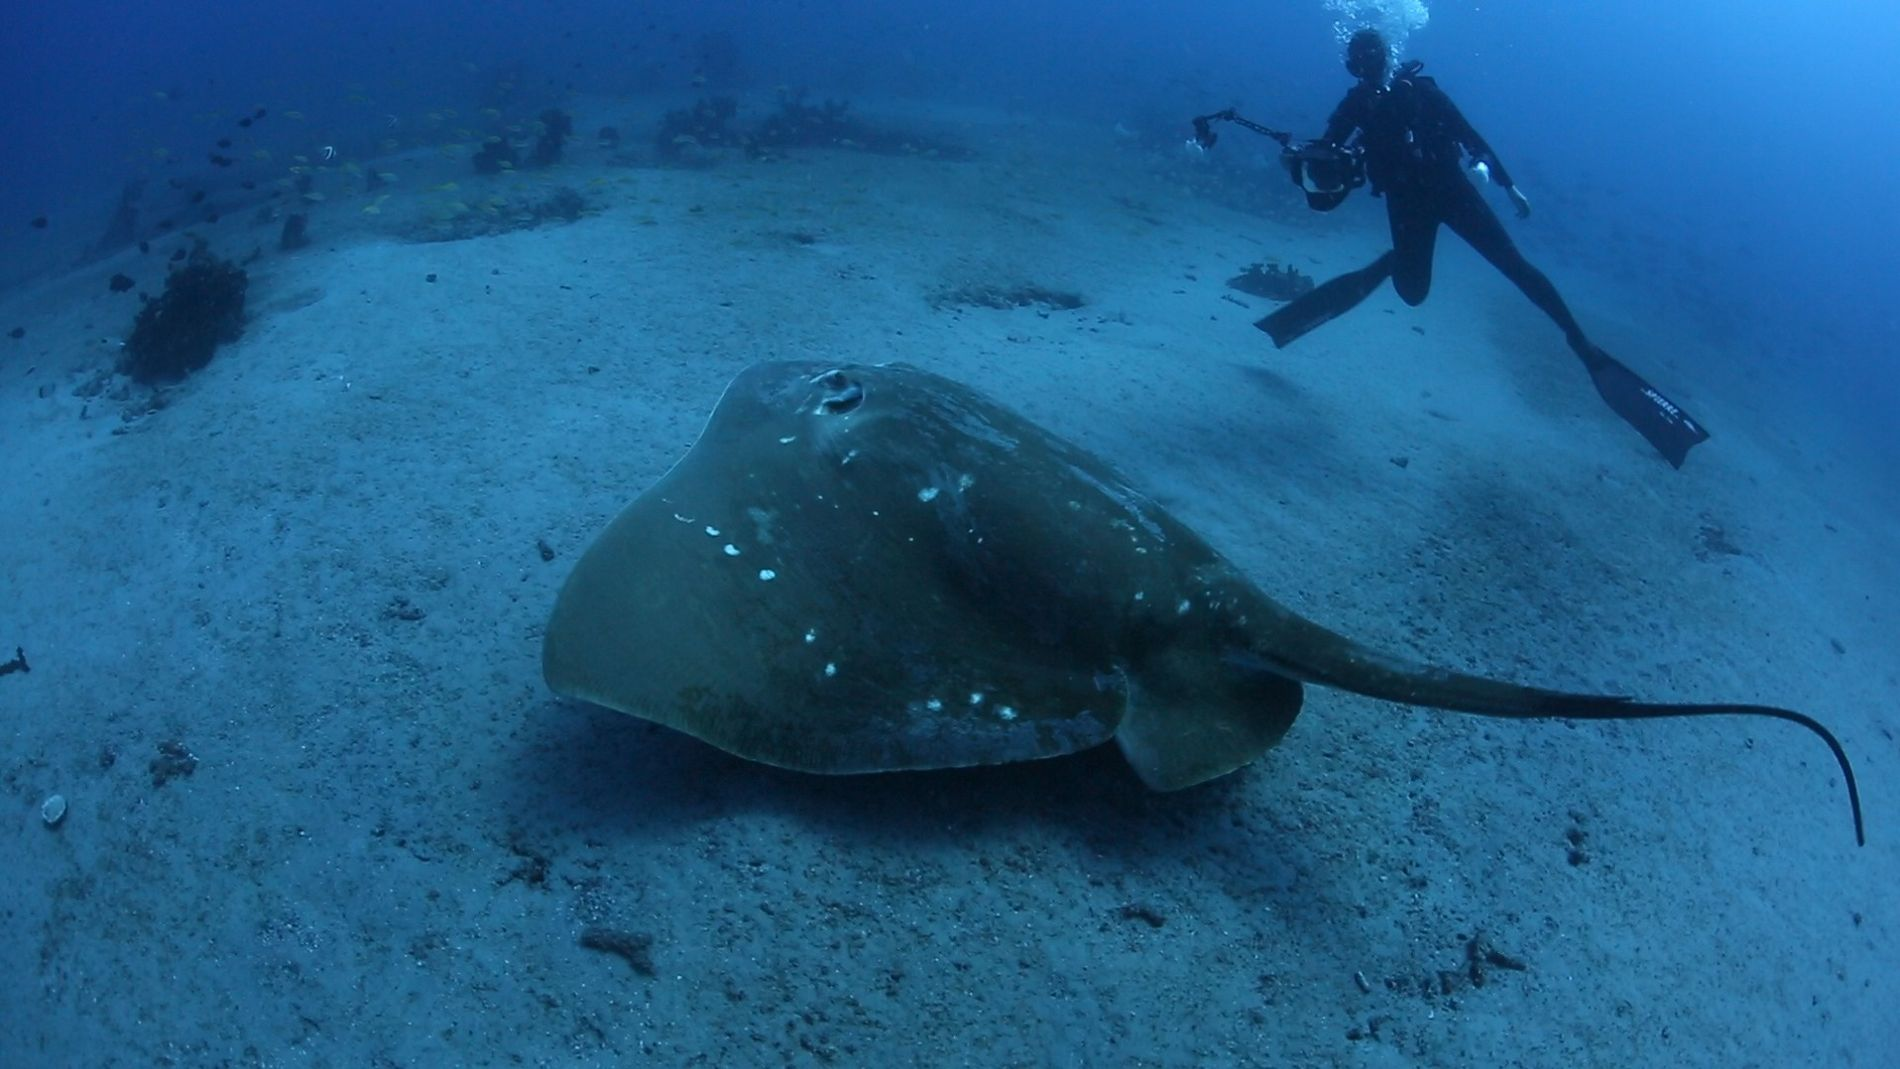 The ocean's largest, rarest stingray revealed in new video